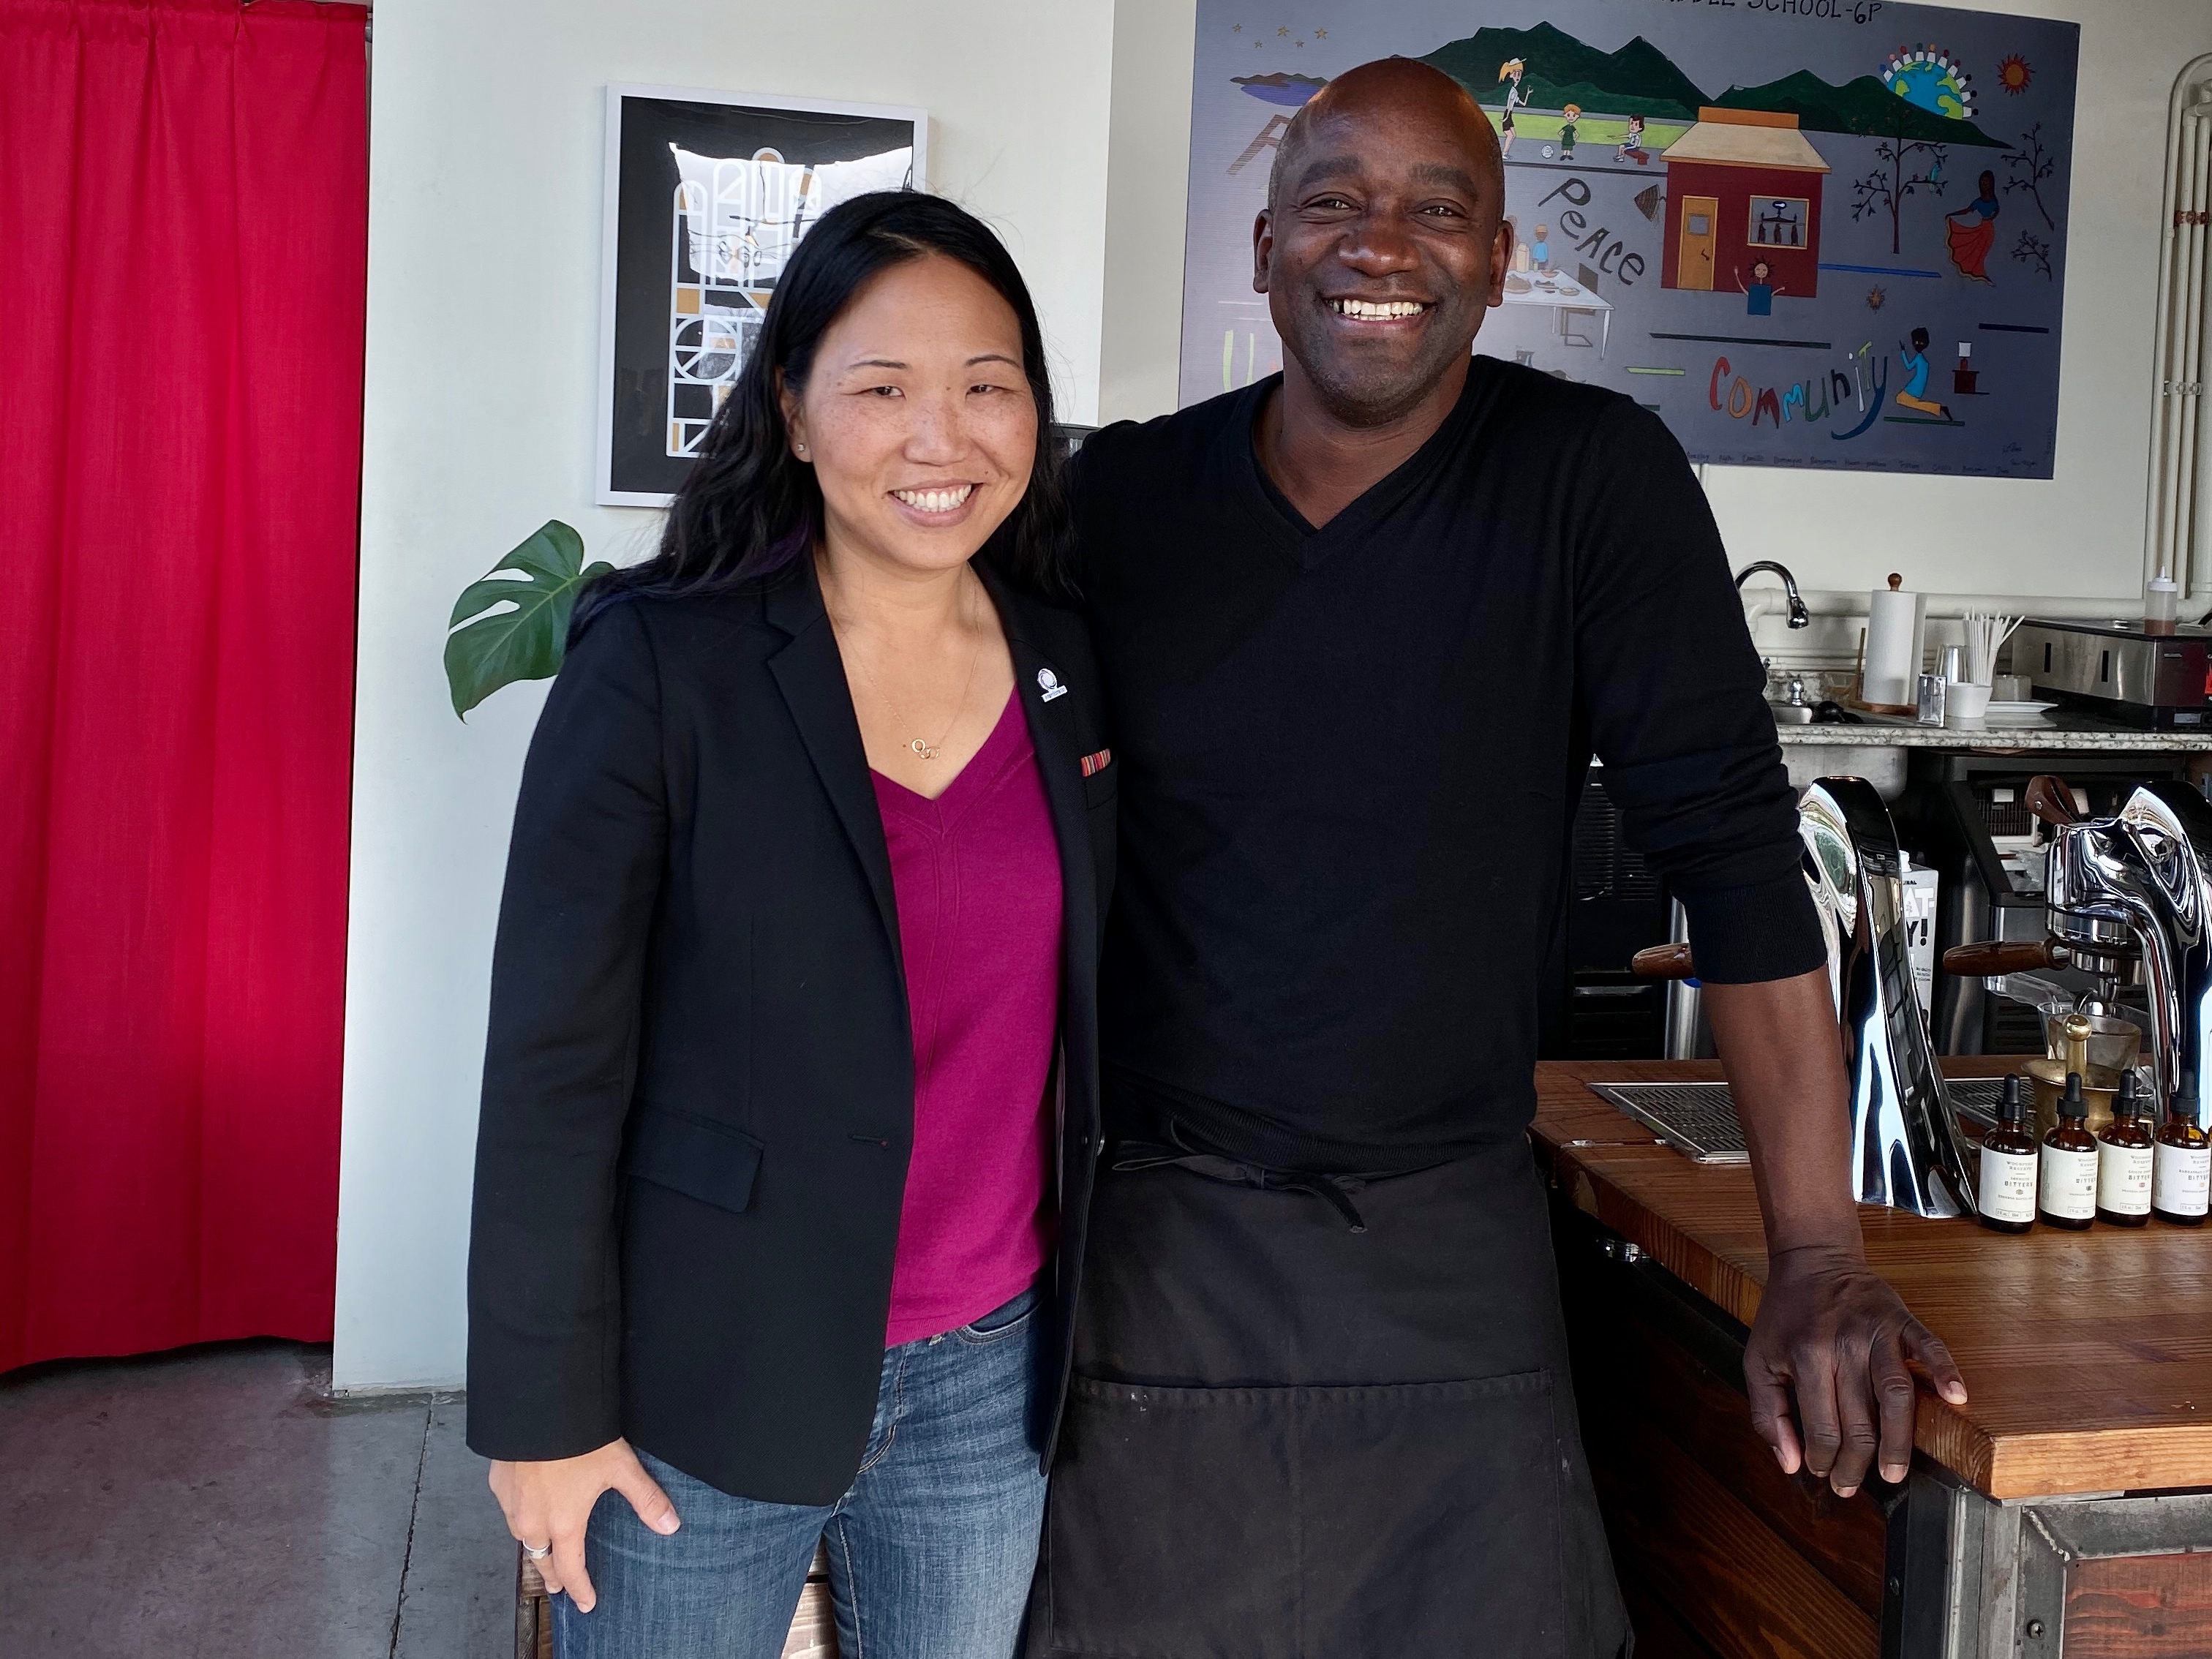 A pre-pandemic snap of Intentionalist CEO, Laura Clise, with Brian Wells, owner of Tougo Coffee, a multi-roaster coffee shop on Yesler. Small businesses like Tougo Coffee are places where we connect with familiar faces and make new connections, one cup of coffee at a time. (Image: Intentionalist)